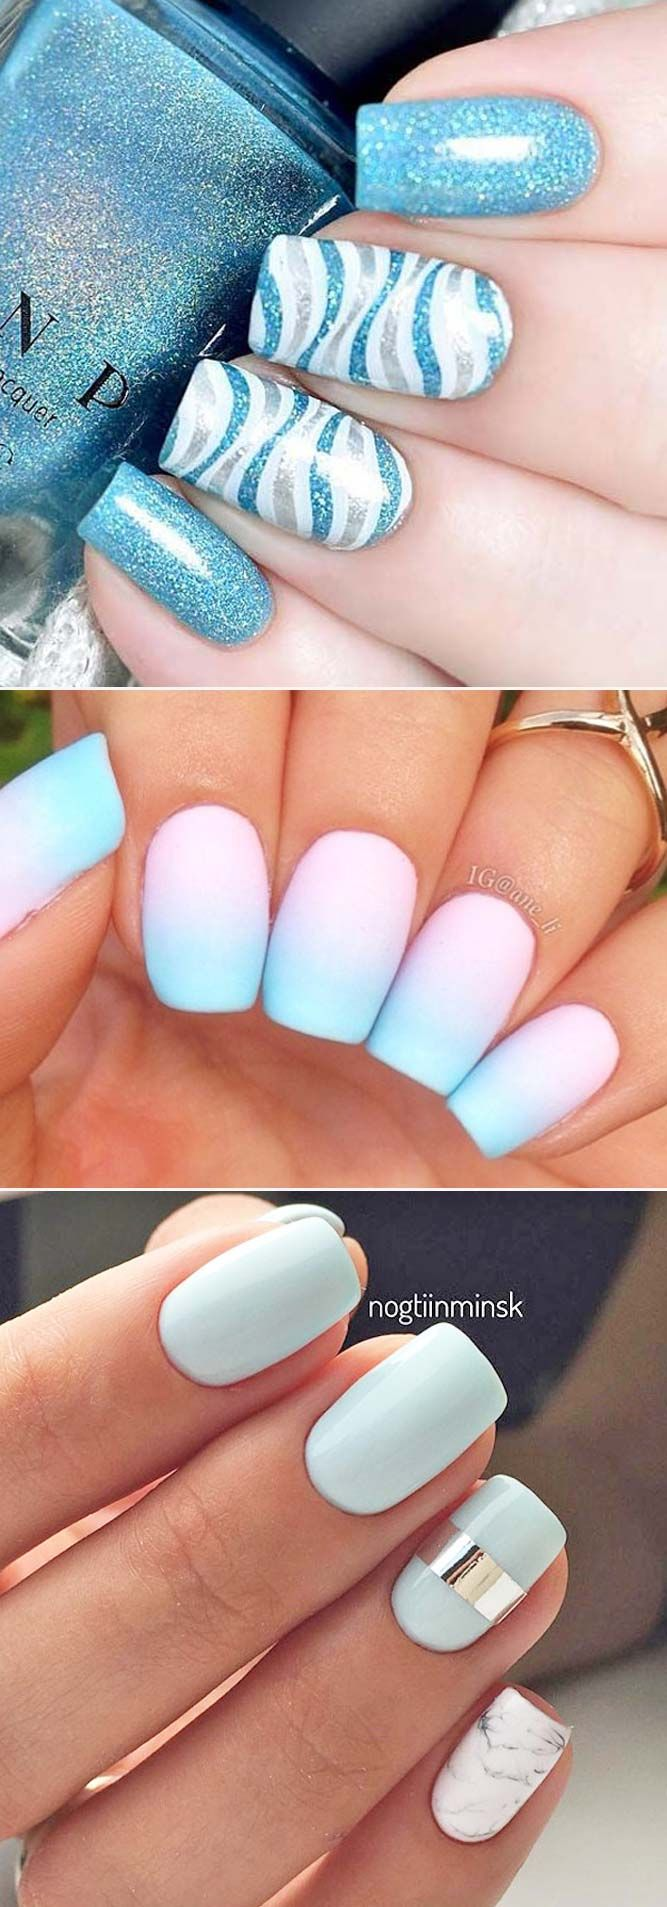 24 Eye-Catching Designs for Fun Summer Nails | Forget, Check and Summer